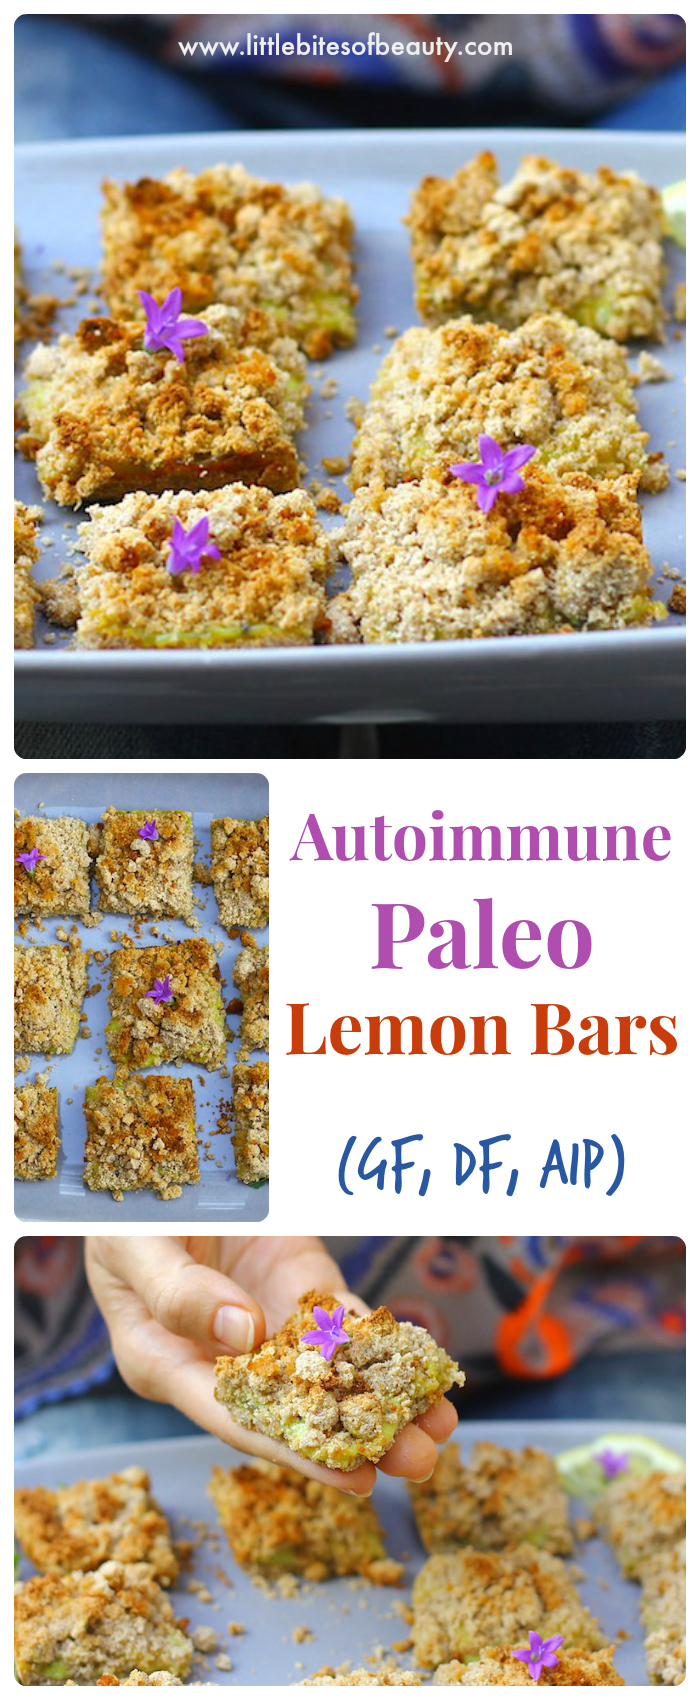 Autoimmune Paleo Lemon Bars (GF, DF, AIP)